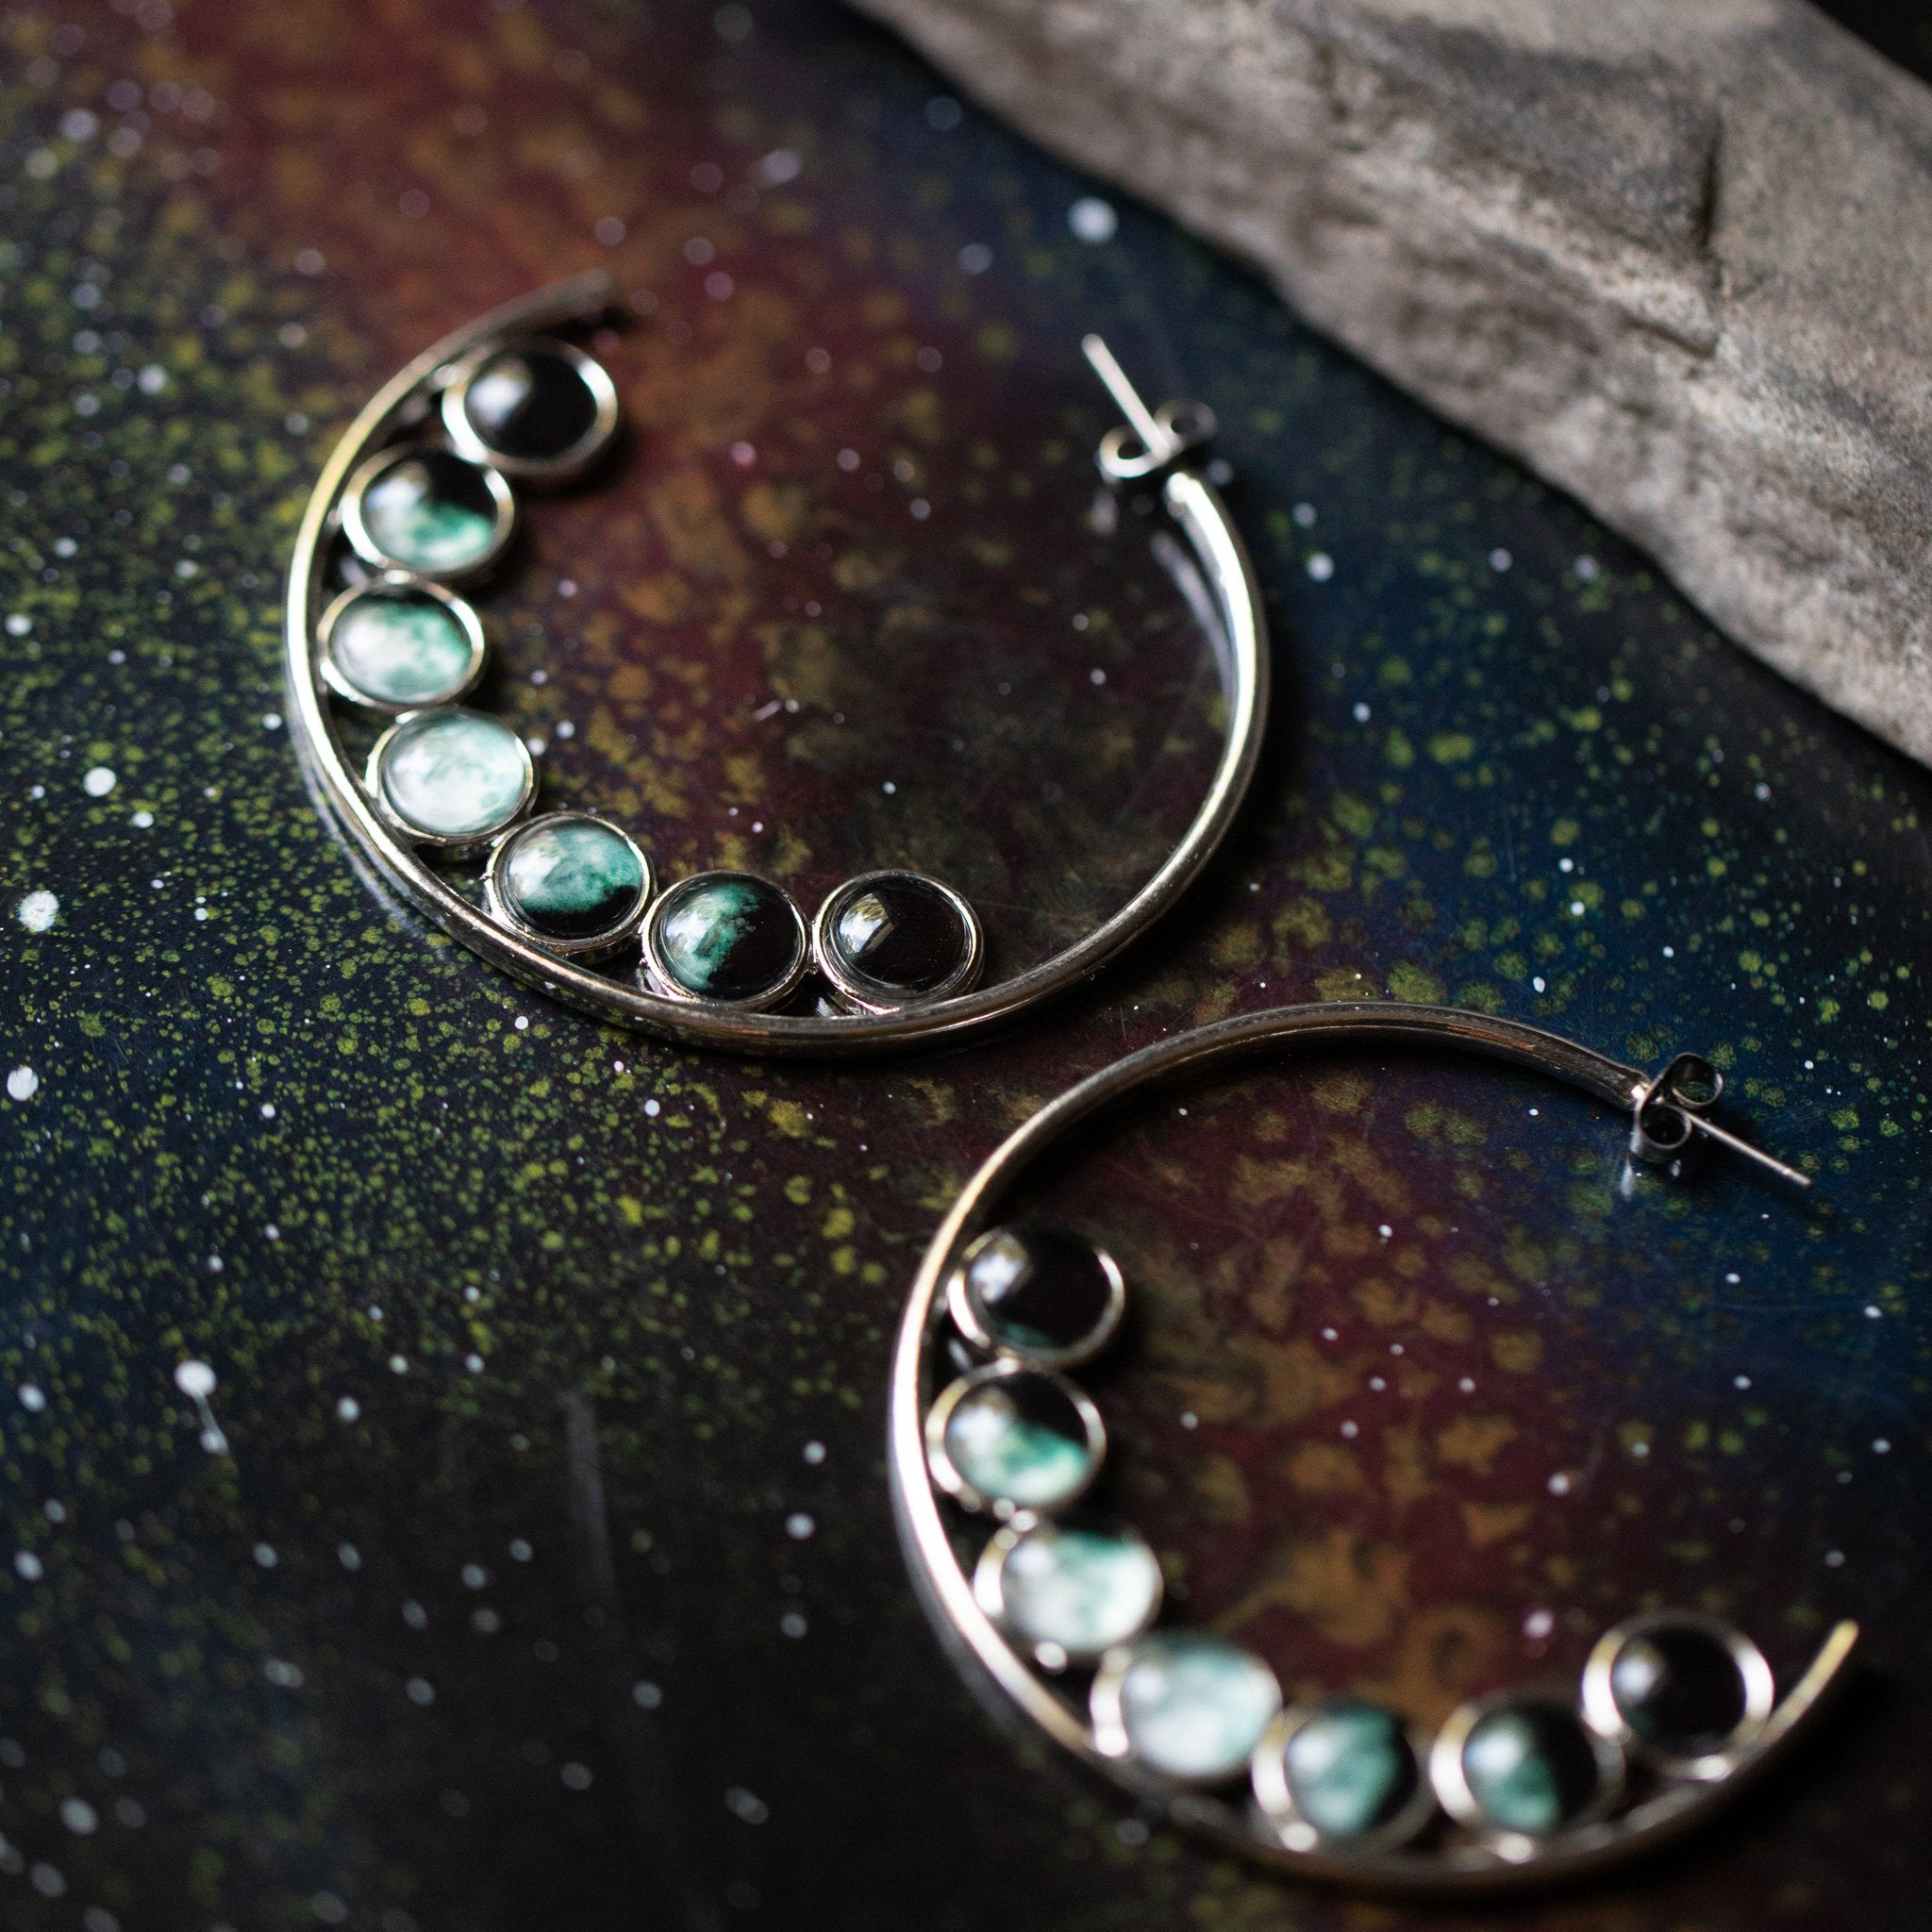 Hoop earrings with 9 phases of the moon - lunar phase jewelry - Silver hoops with moon phases , handmade STEM fashion for scientists and astrophysicists - Astrology jewelry by yugen tribe